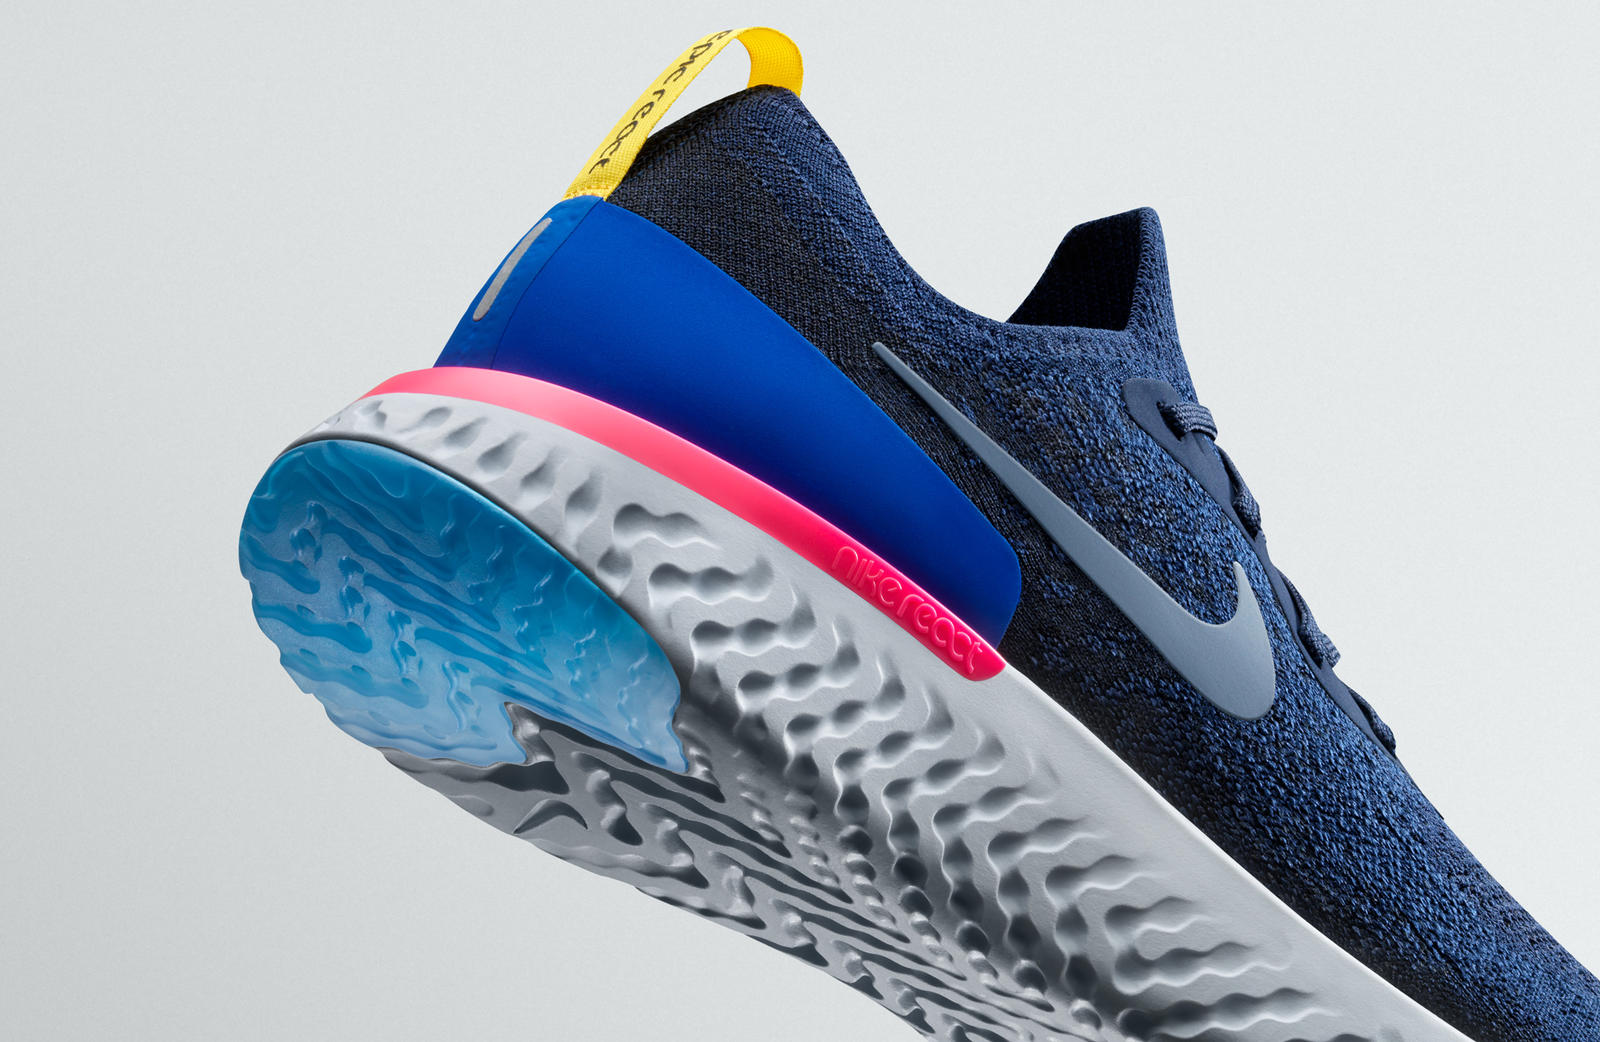 a0ac663cfd2a7 Meet the Nike Epic React Flyknit - Nike News